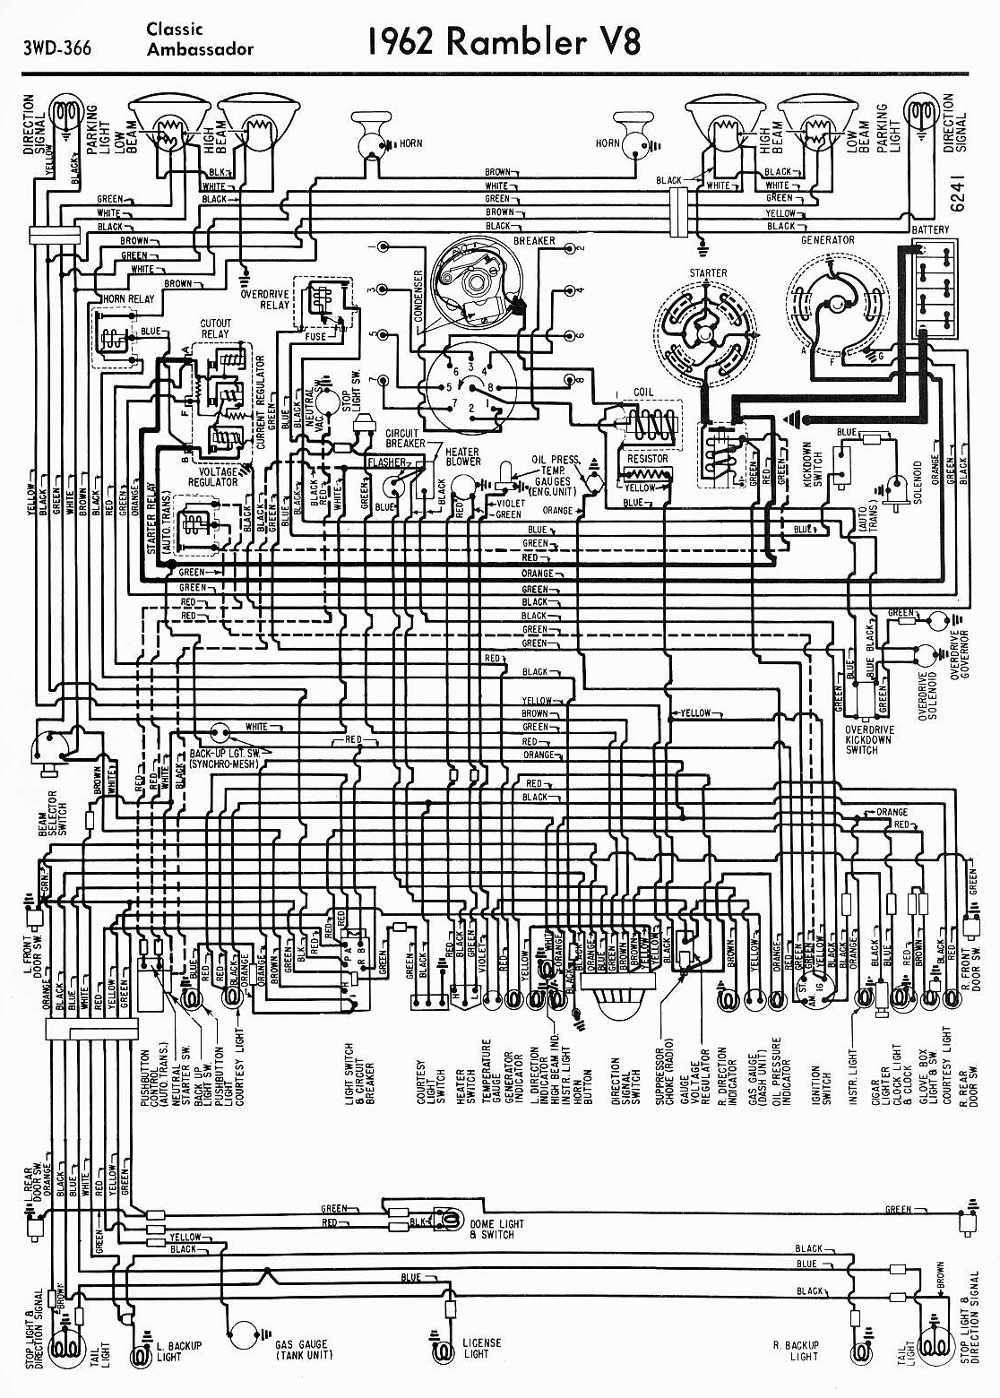 amc javelin wiring schematic wiring diagram1969 amc wiring diagram 2 dfc19 psychosomatik rose de \\u20221969 amc wiring diagram wiring schematic